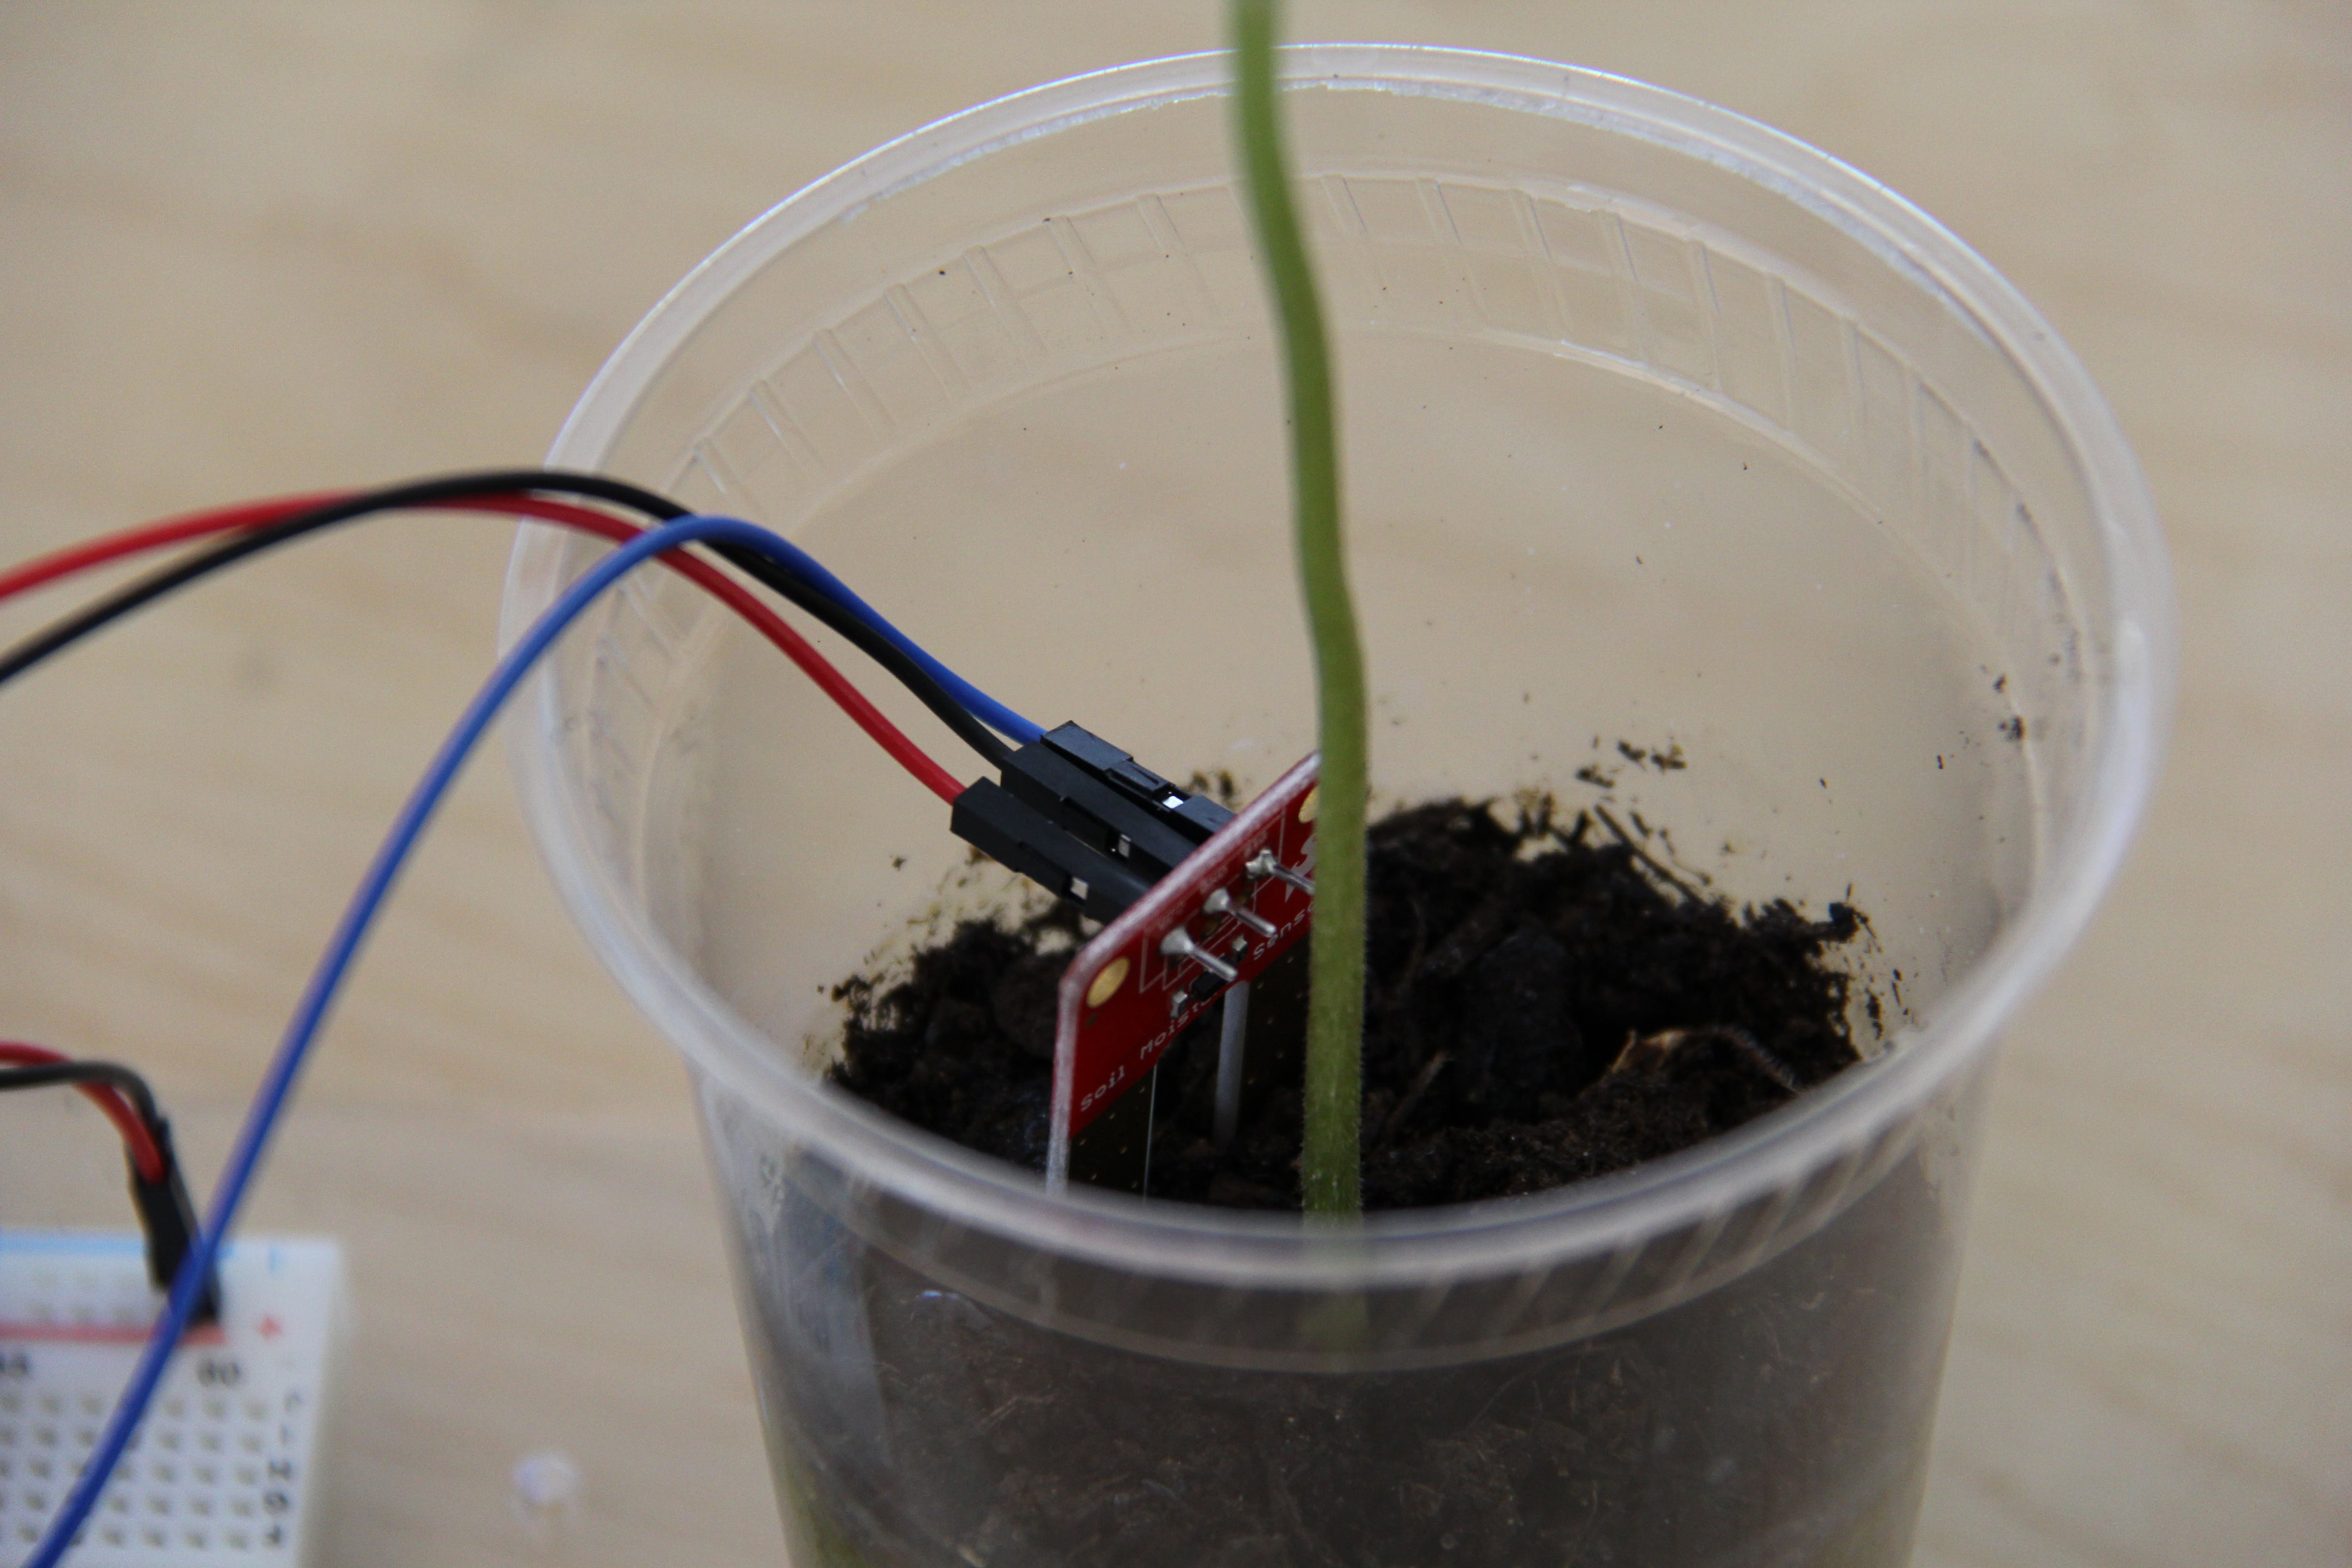 Soil Moisture sensor with soldered wires